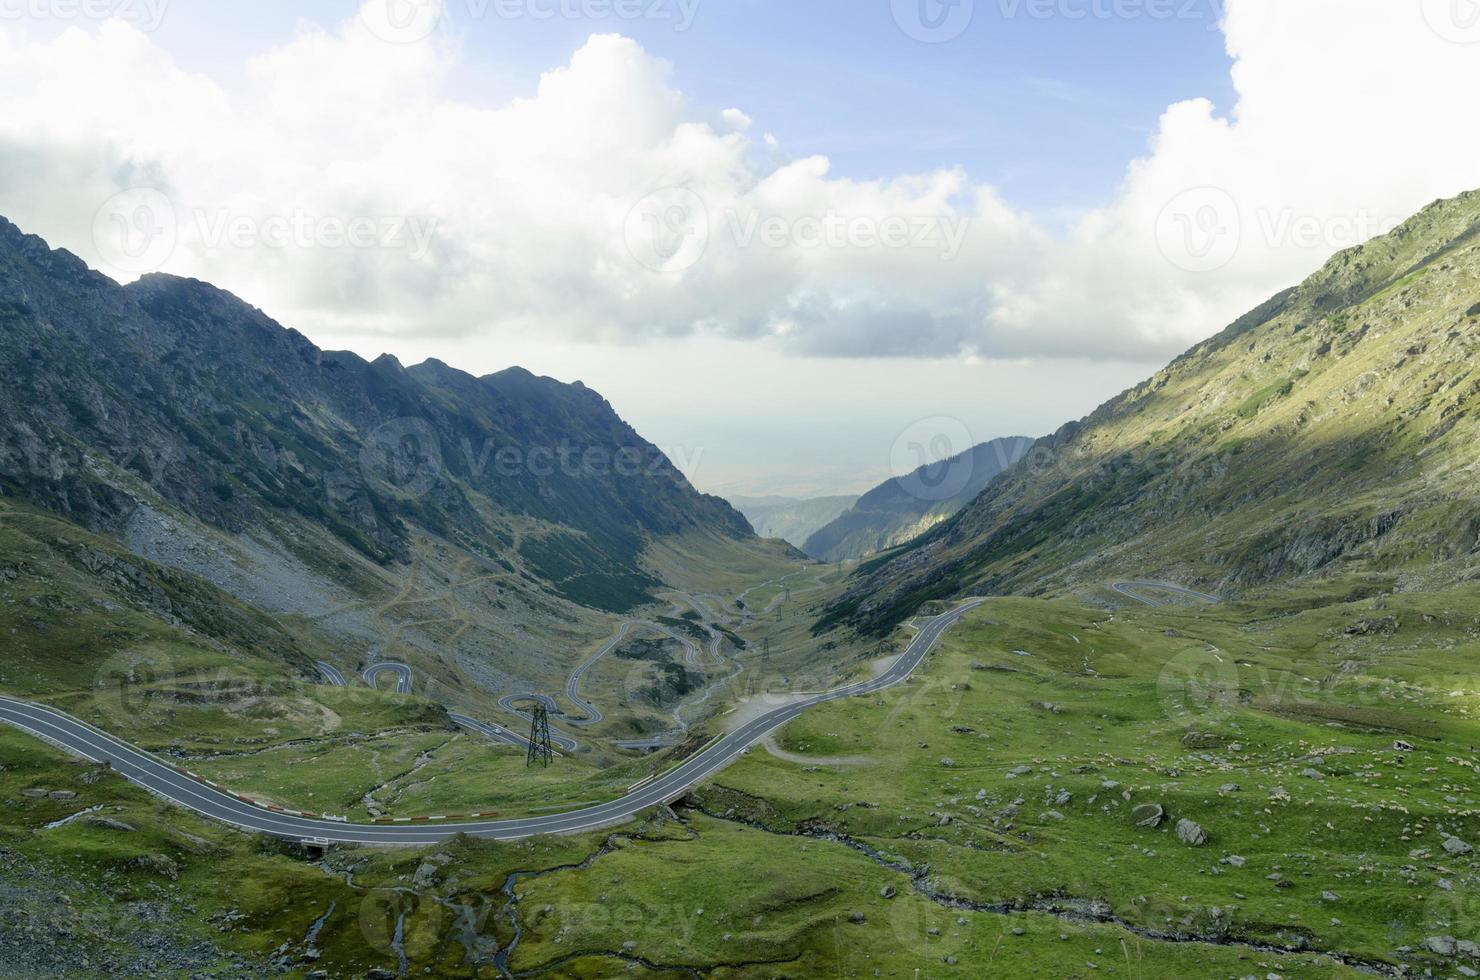 One of the most beautiful mountain roads in the world photo